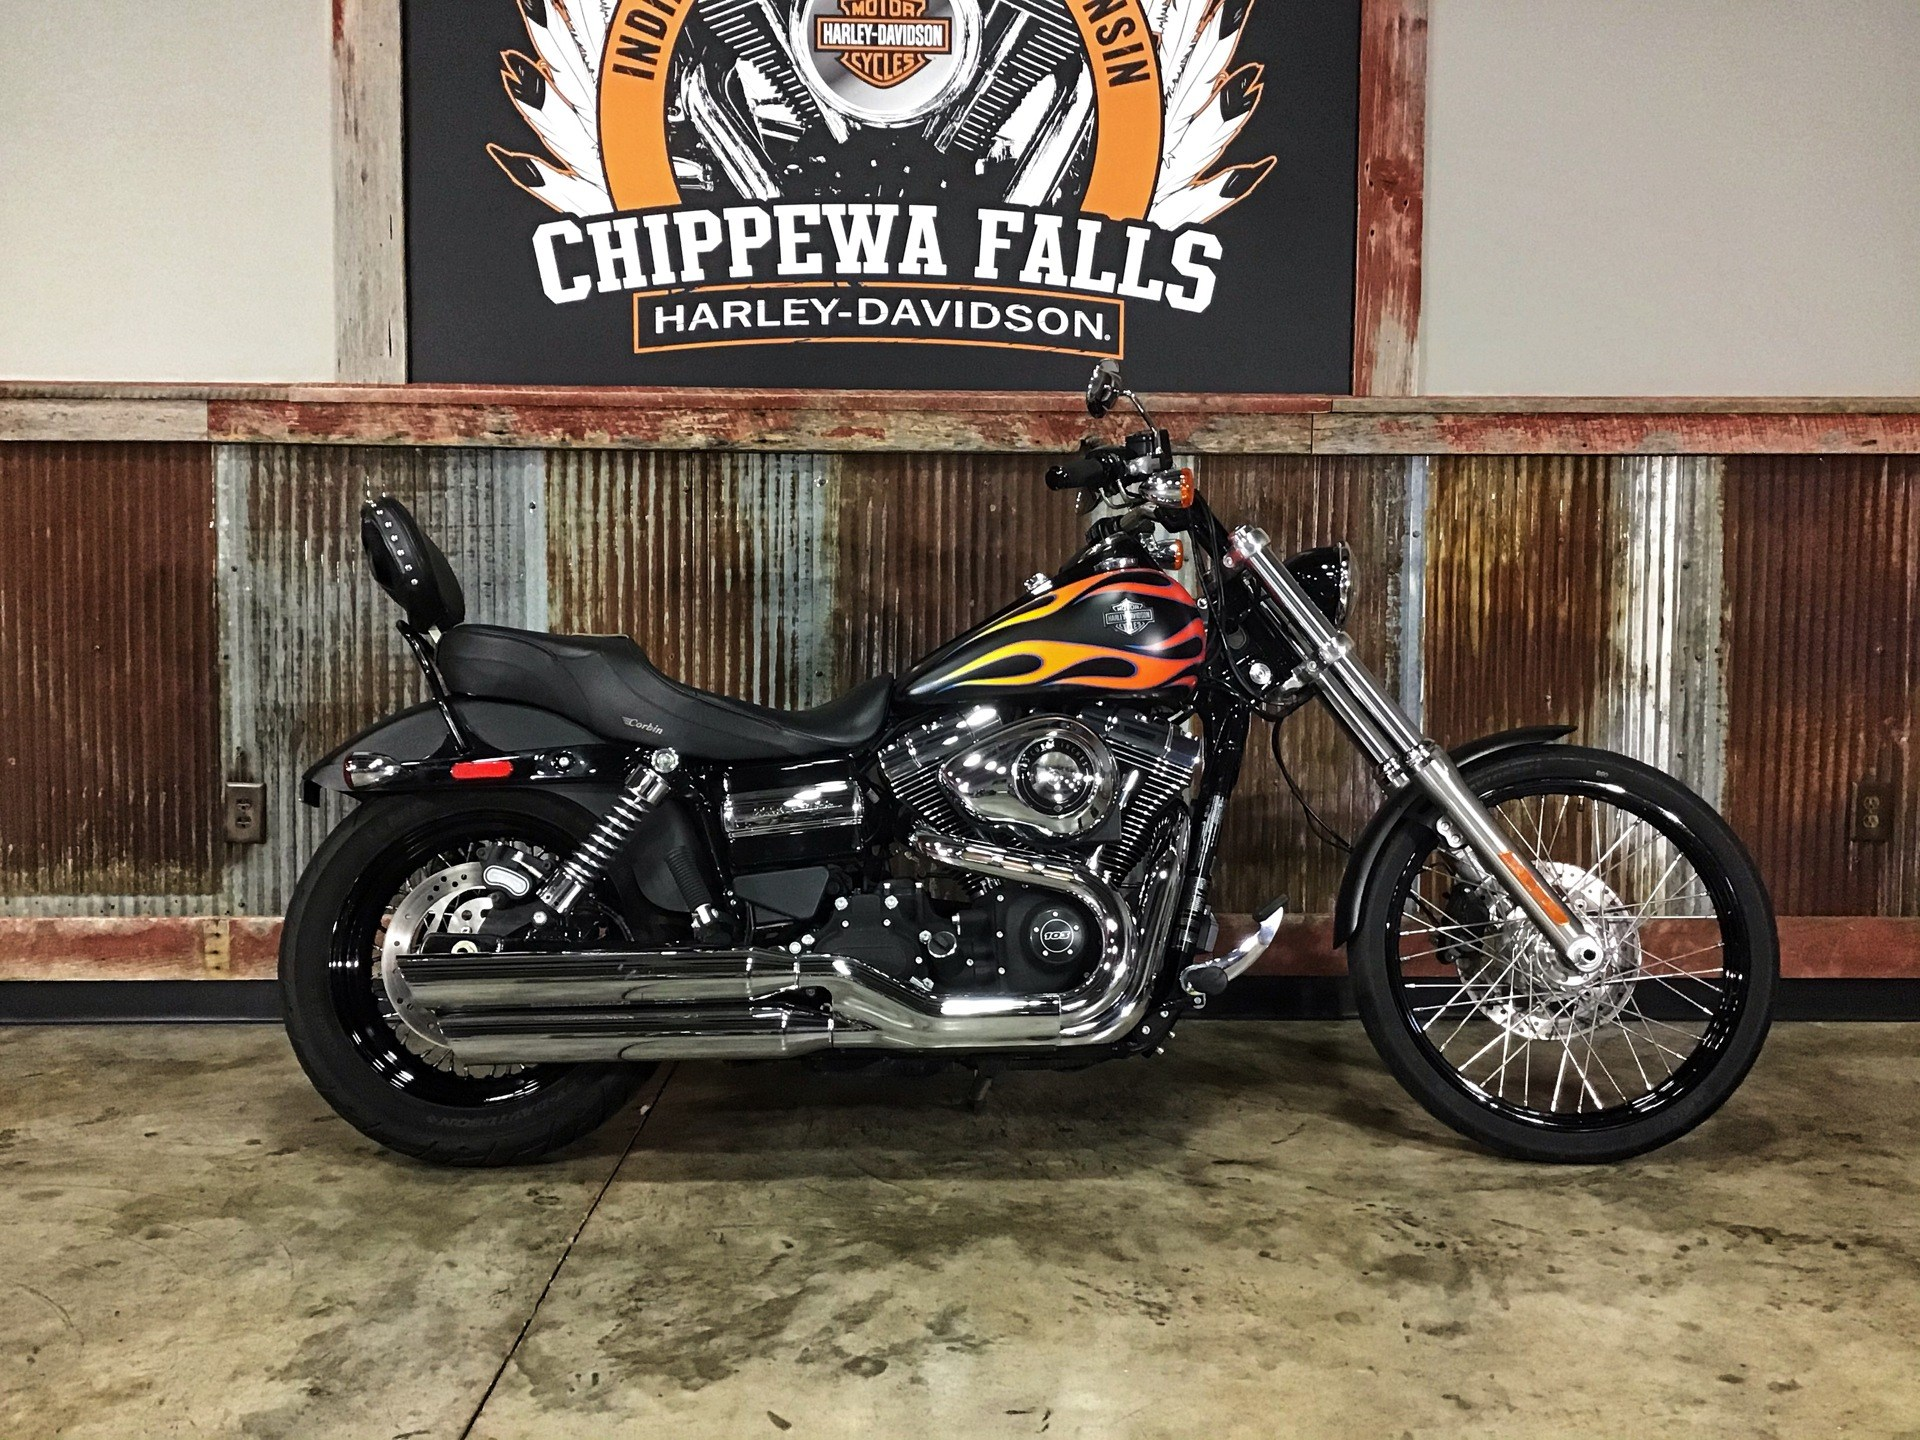 2015 Harley-Davidson Wide Glide® in Chippewa Falls, Wisconsin - Photo 1